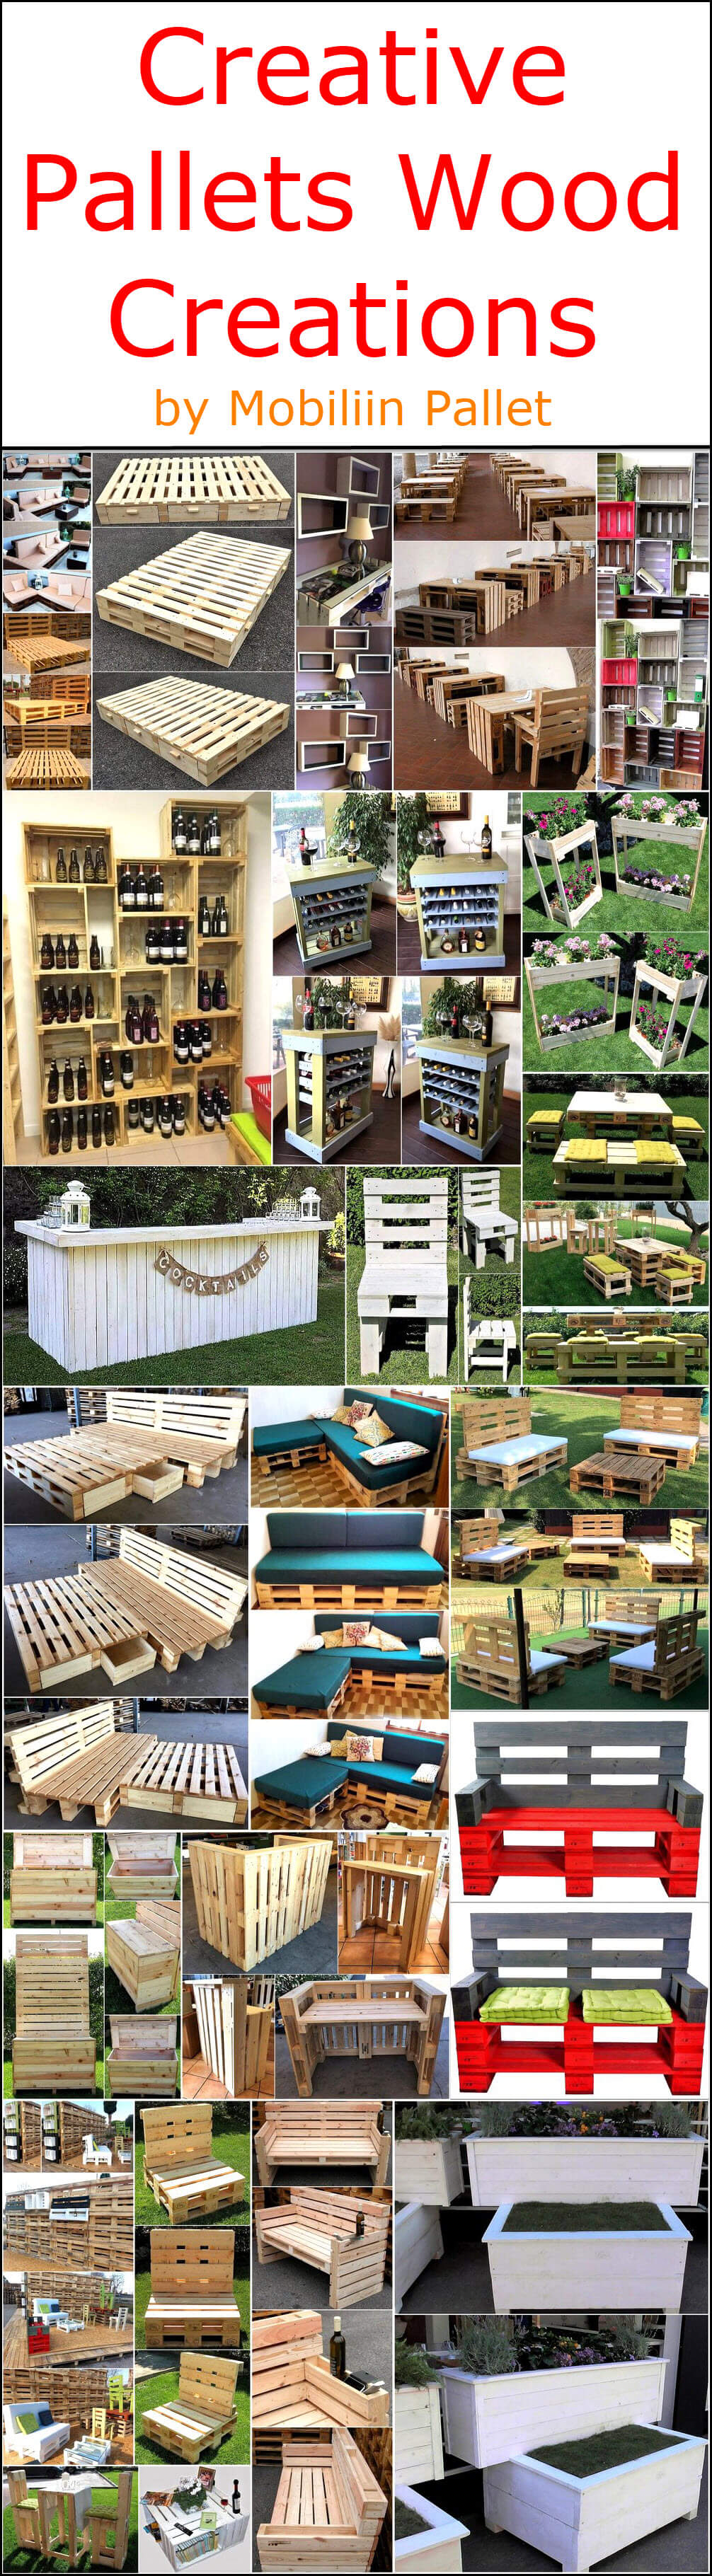 Creative Pallets Wood Creations by Mobiliin Pallet